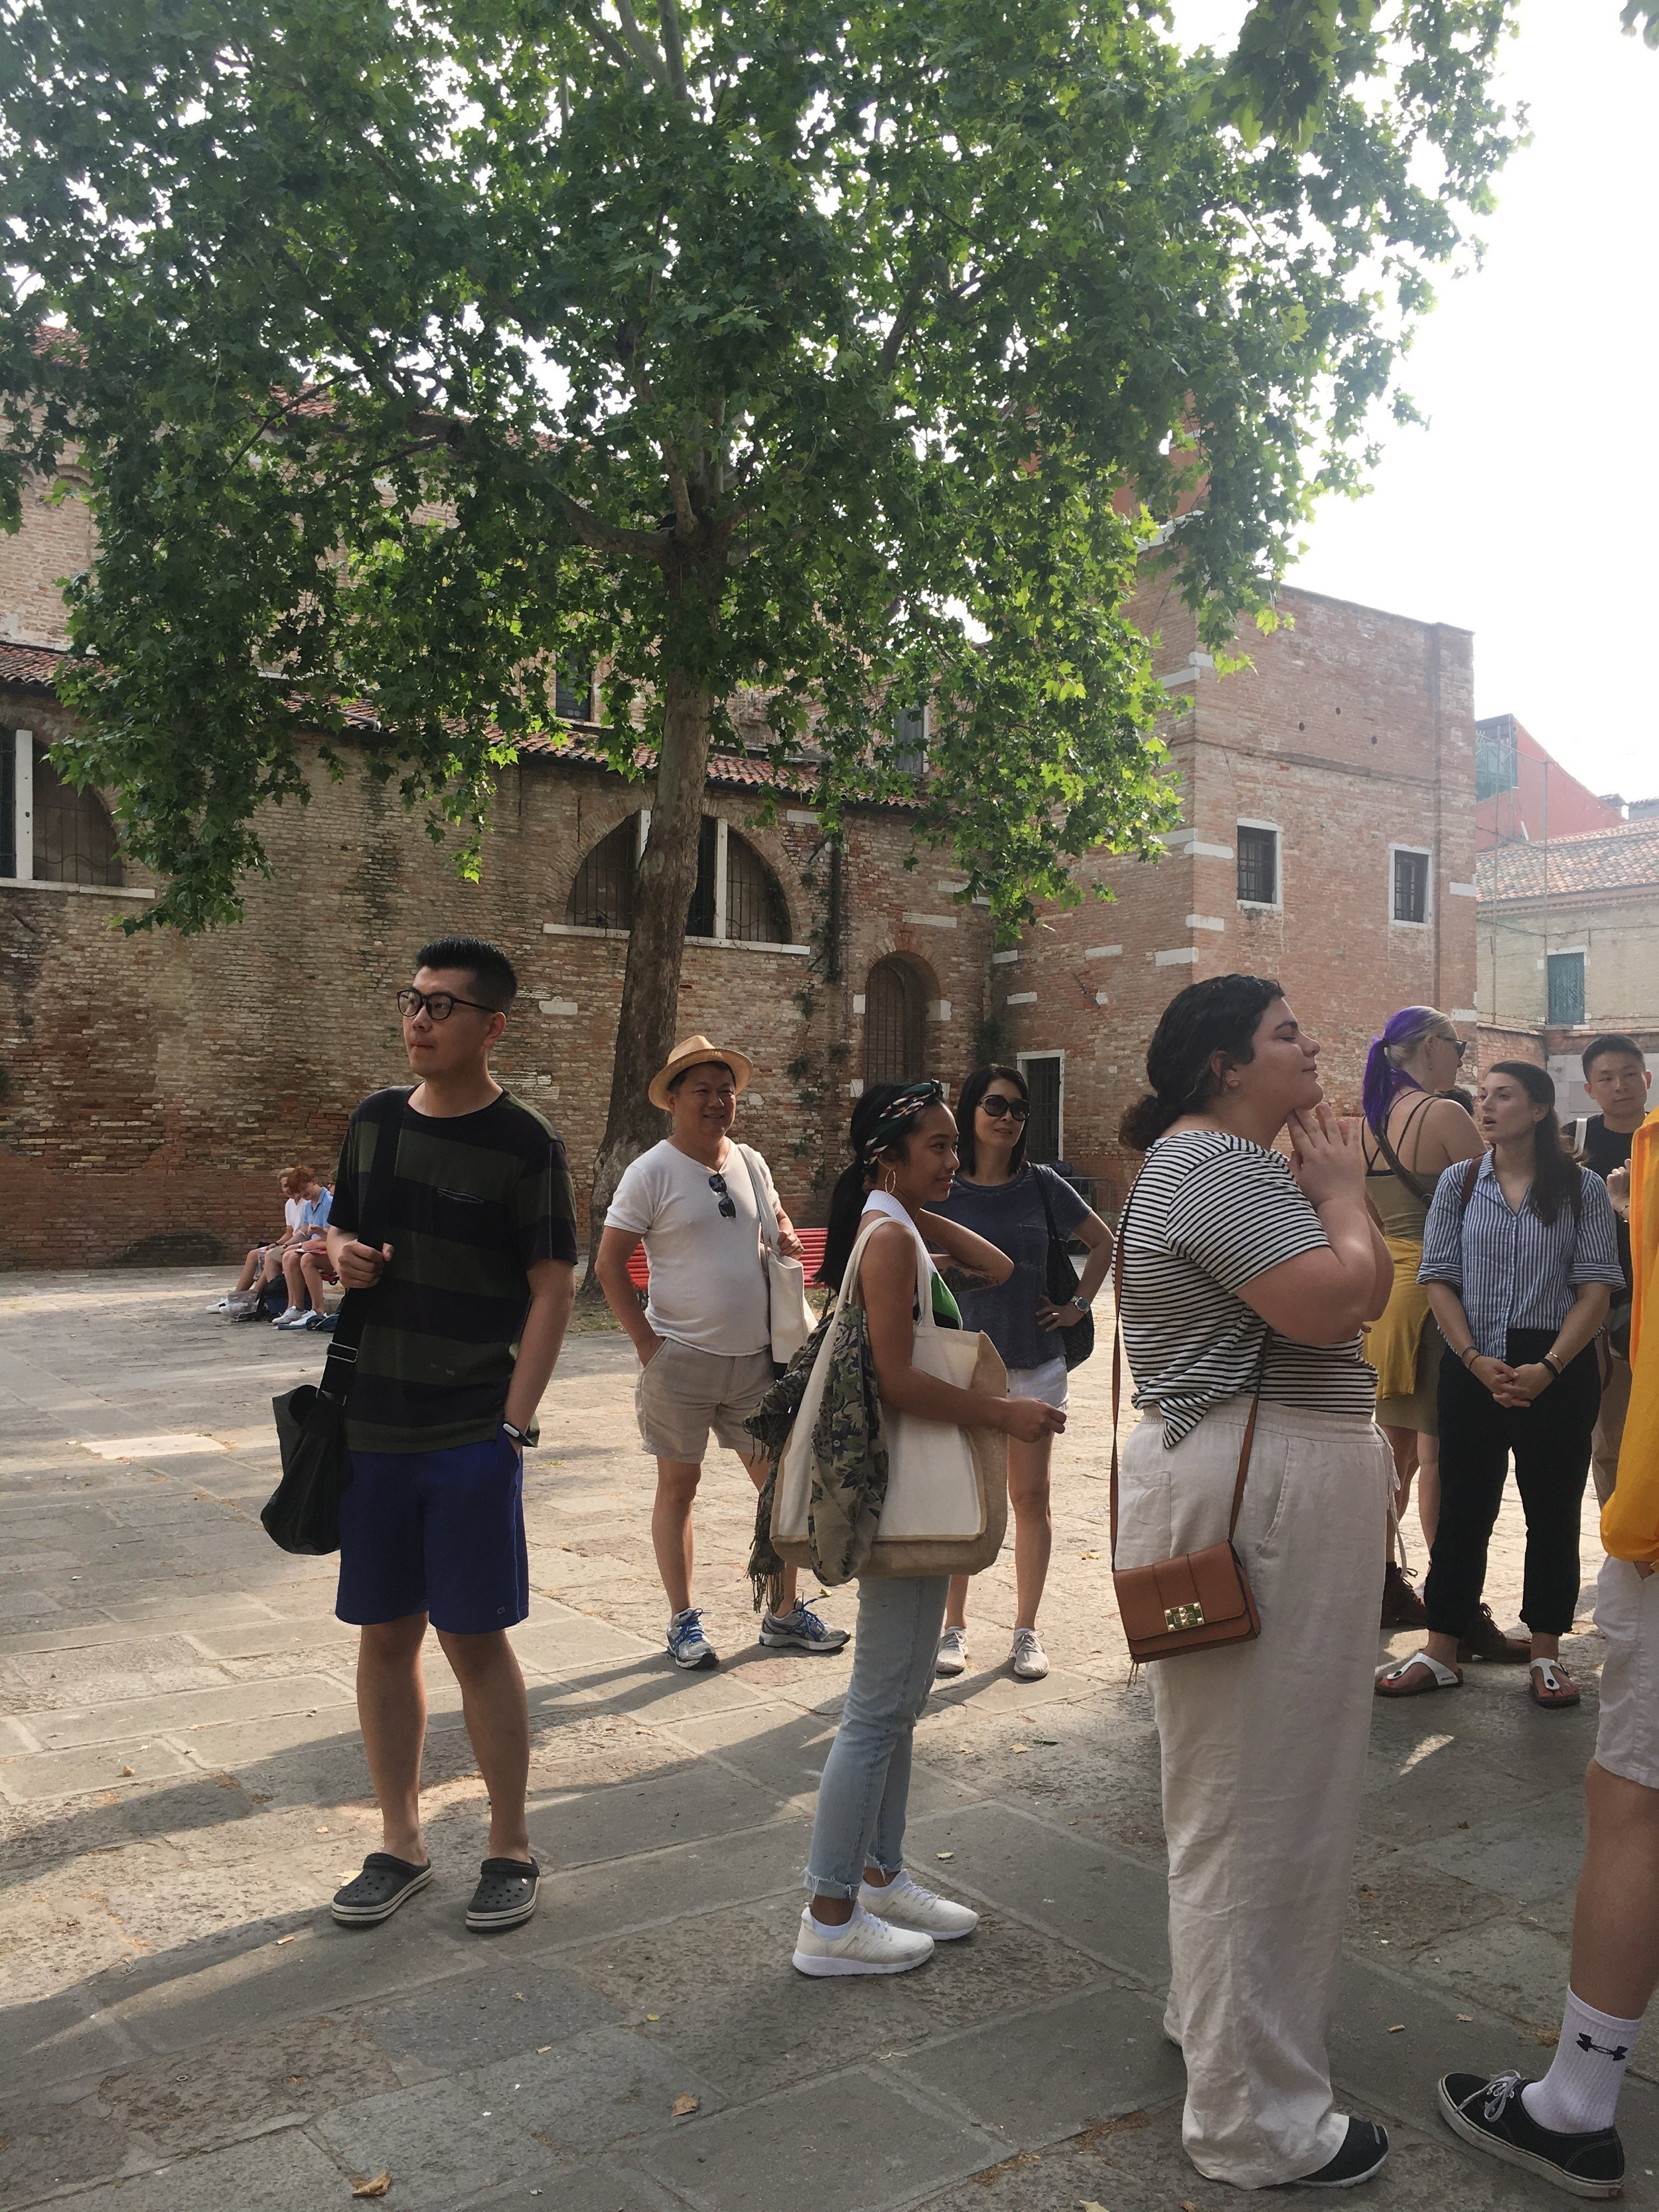 Penghui is pictured here during the first walking tour orientation